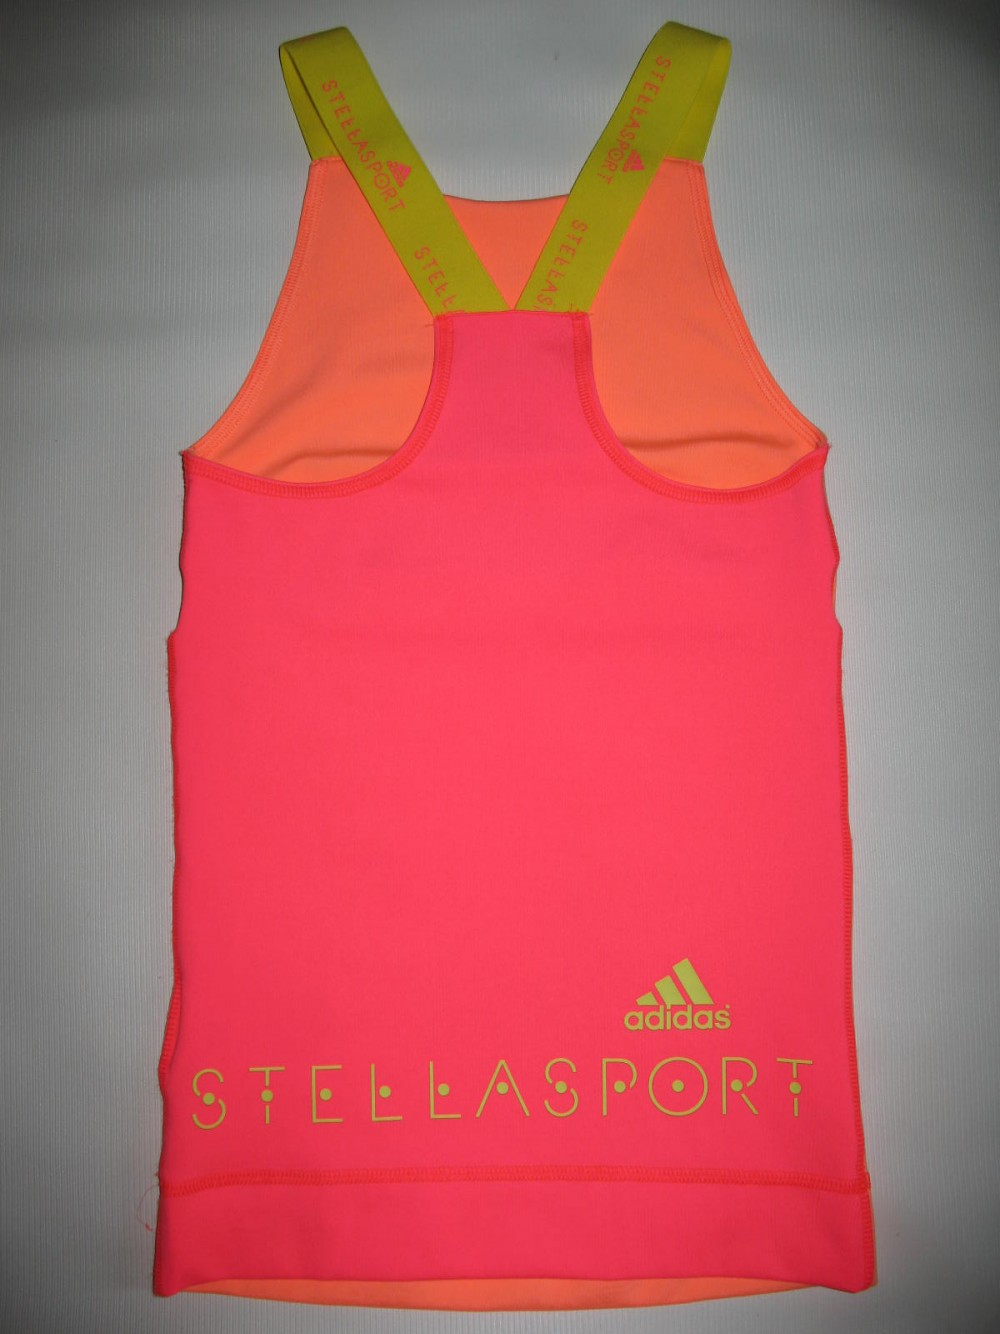 Веломайка ADIDAS stella mccartney top lady (размер XS) - 1